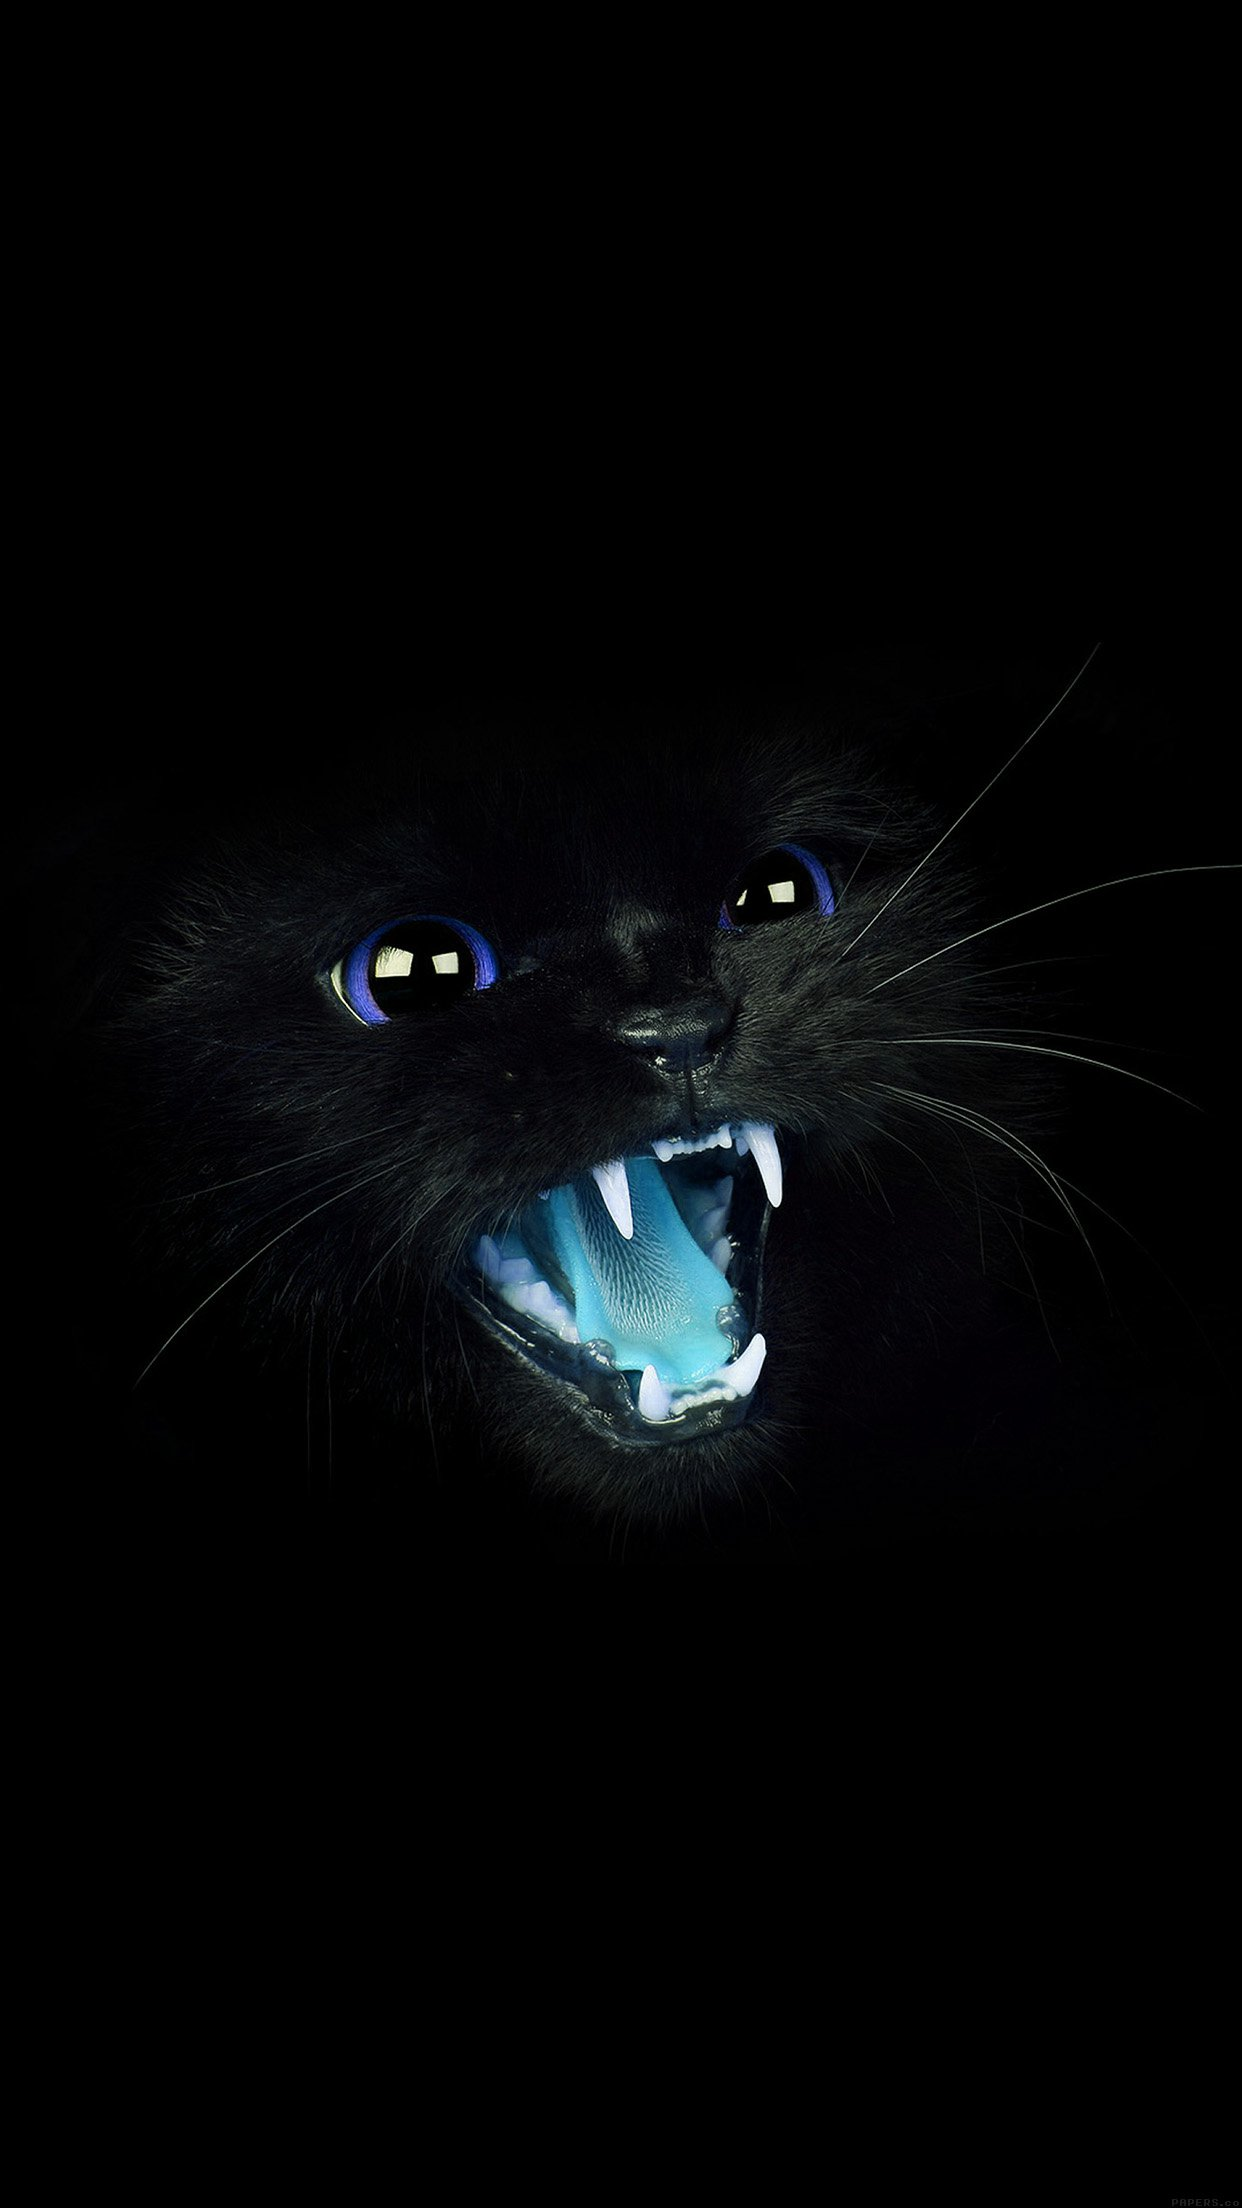 Black Cat Blue Eye Roar Animal Cute Android Wallpaper Android Hd